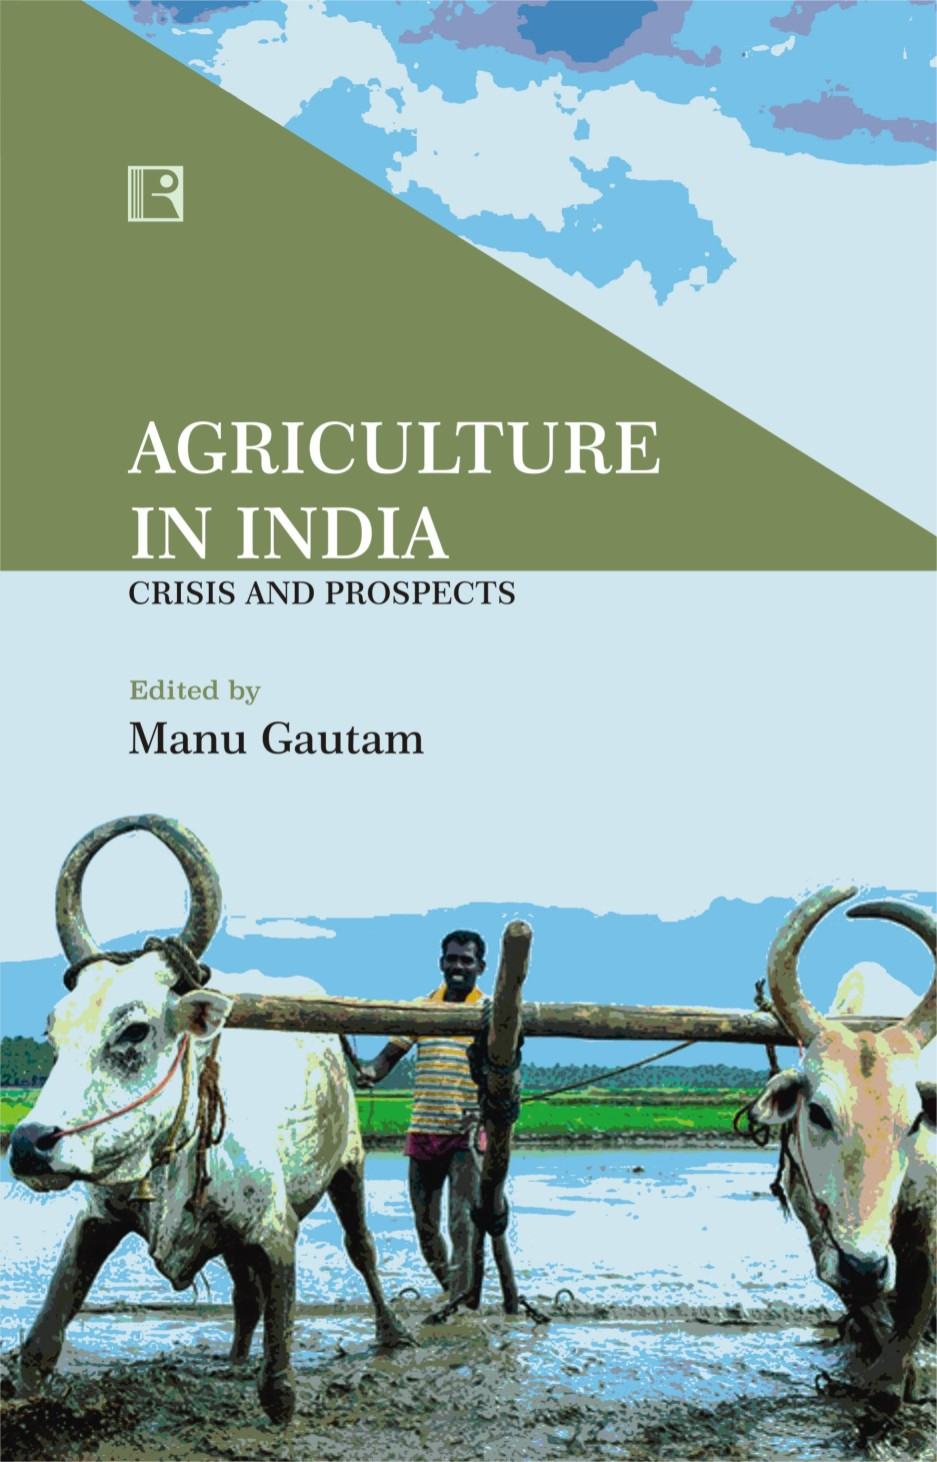 AGRICULTURE IN INDIA: Crisis and Prospects